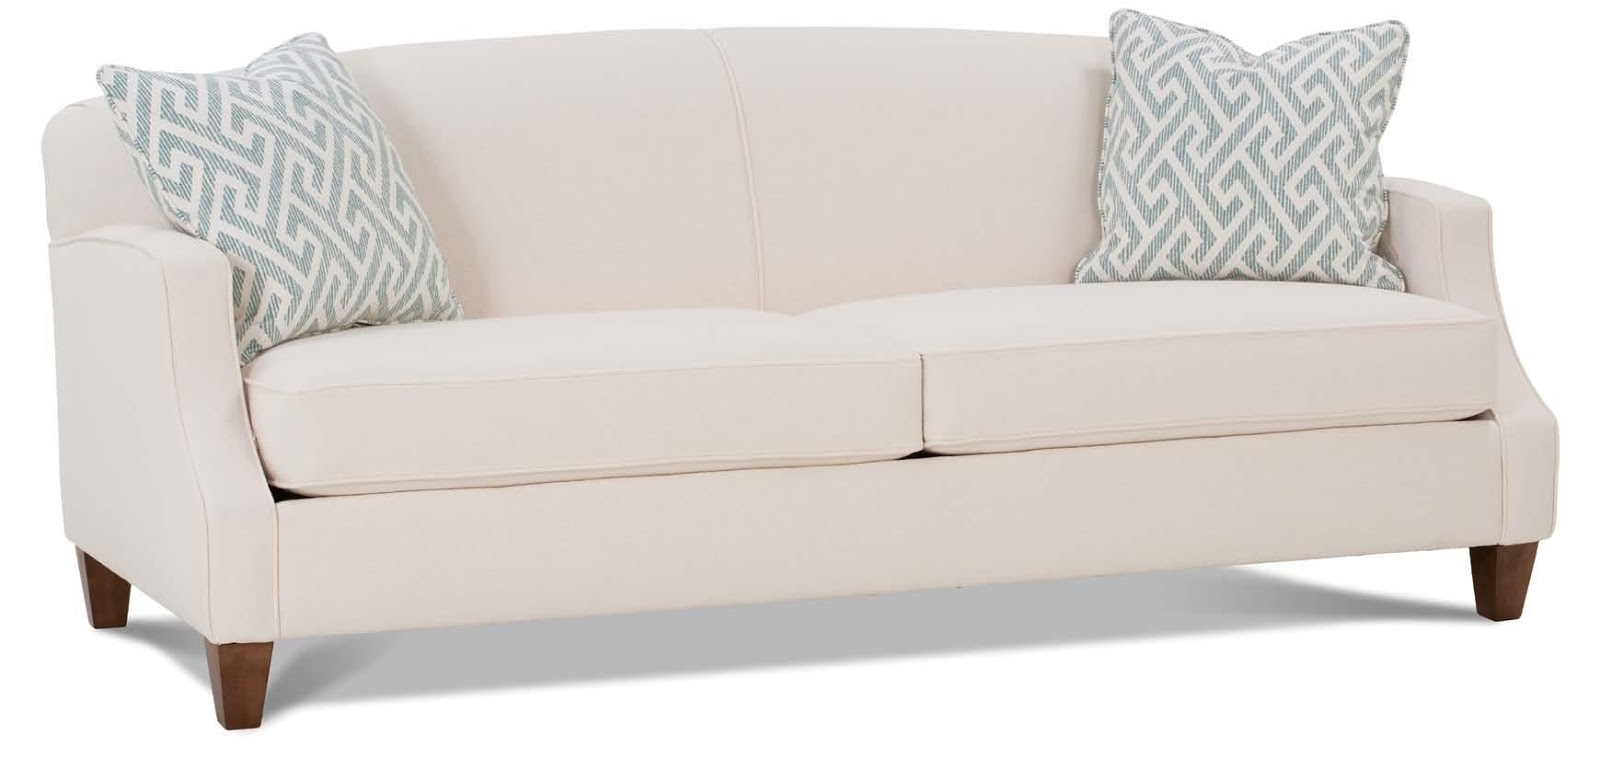 How to clean your sleeper sofa. Hildreth s Home Goods  How to clean your sleeper sofa